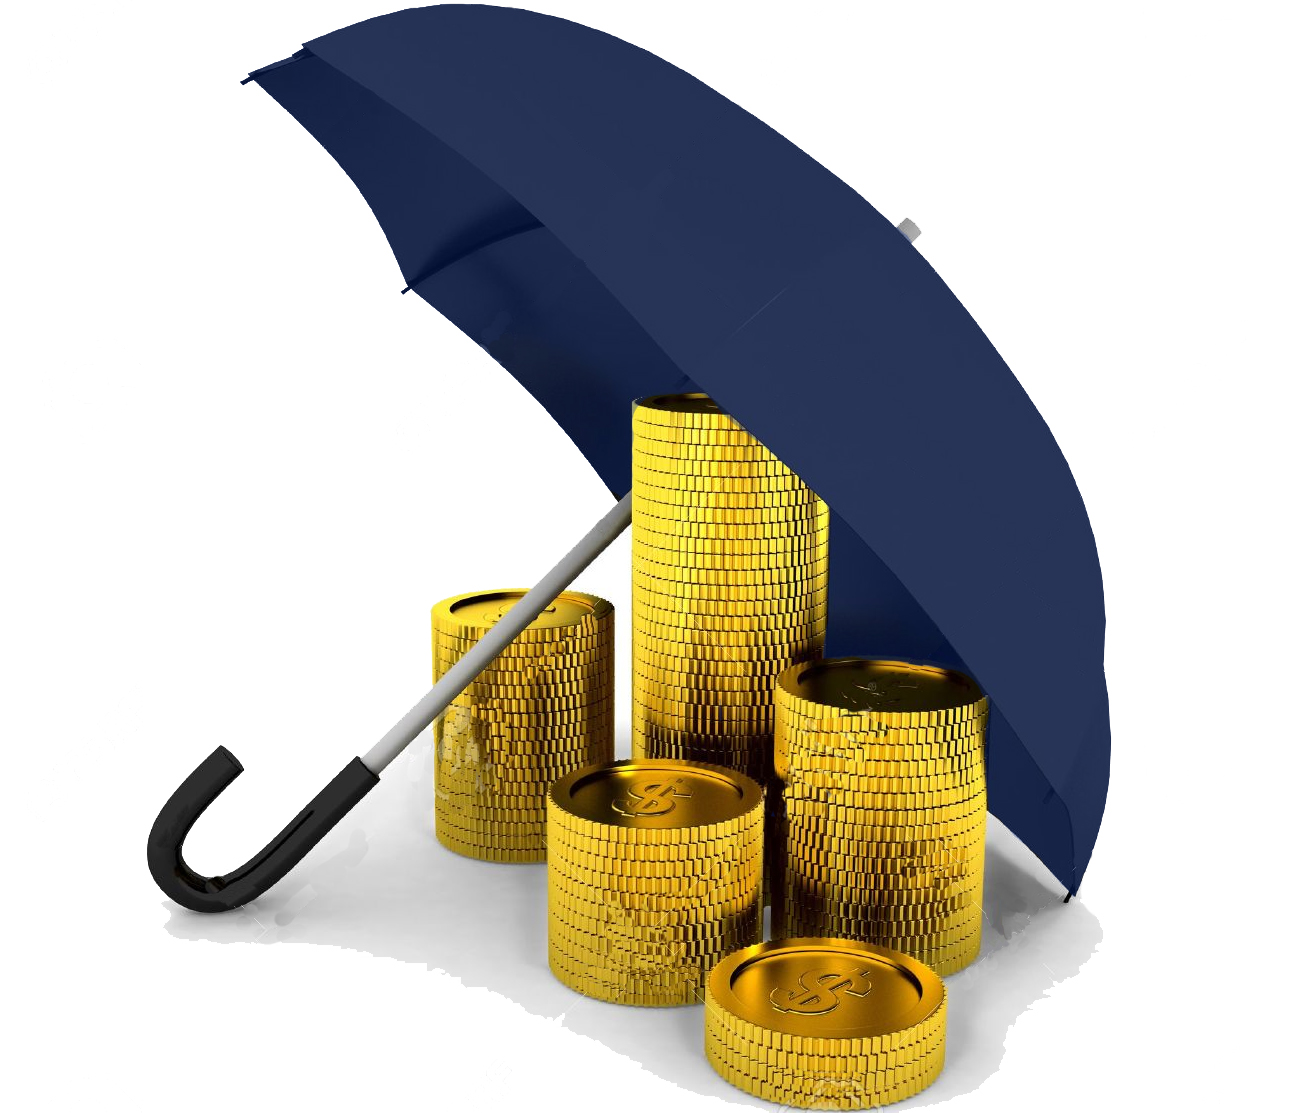 L Amp S Accounting Firm Umbrella Services